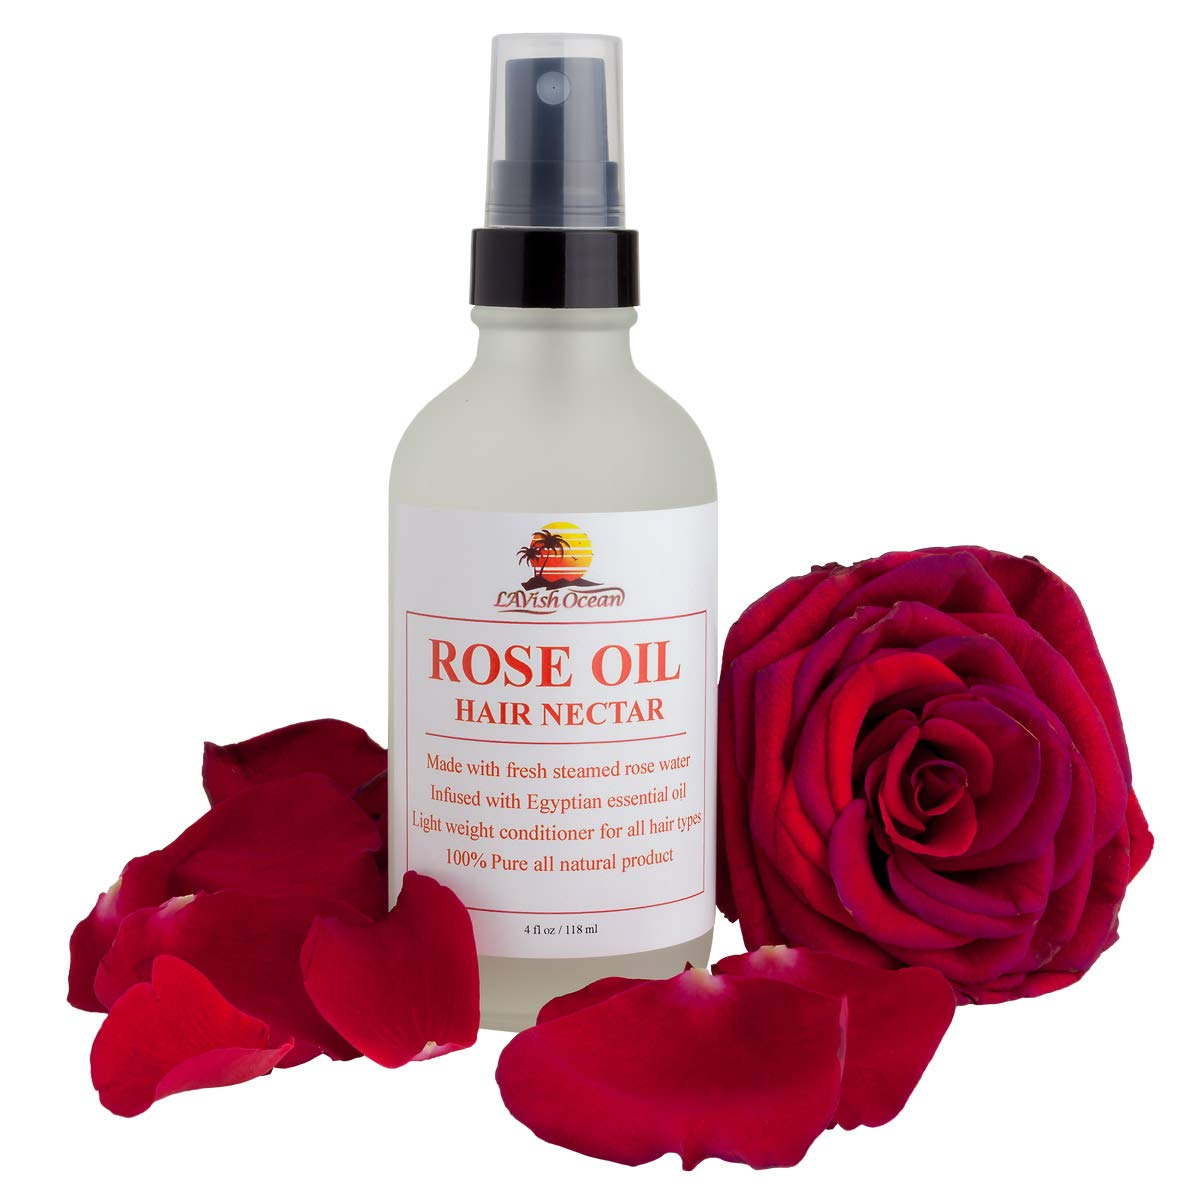 Lavish Ocean Rose Oil Hair Nectar - Made With Fresh Steamed Rose Water